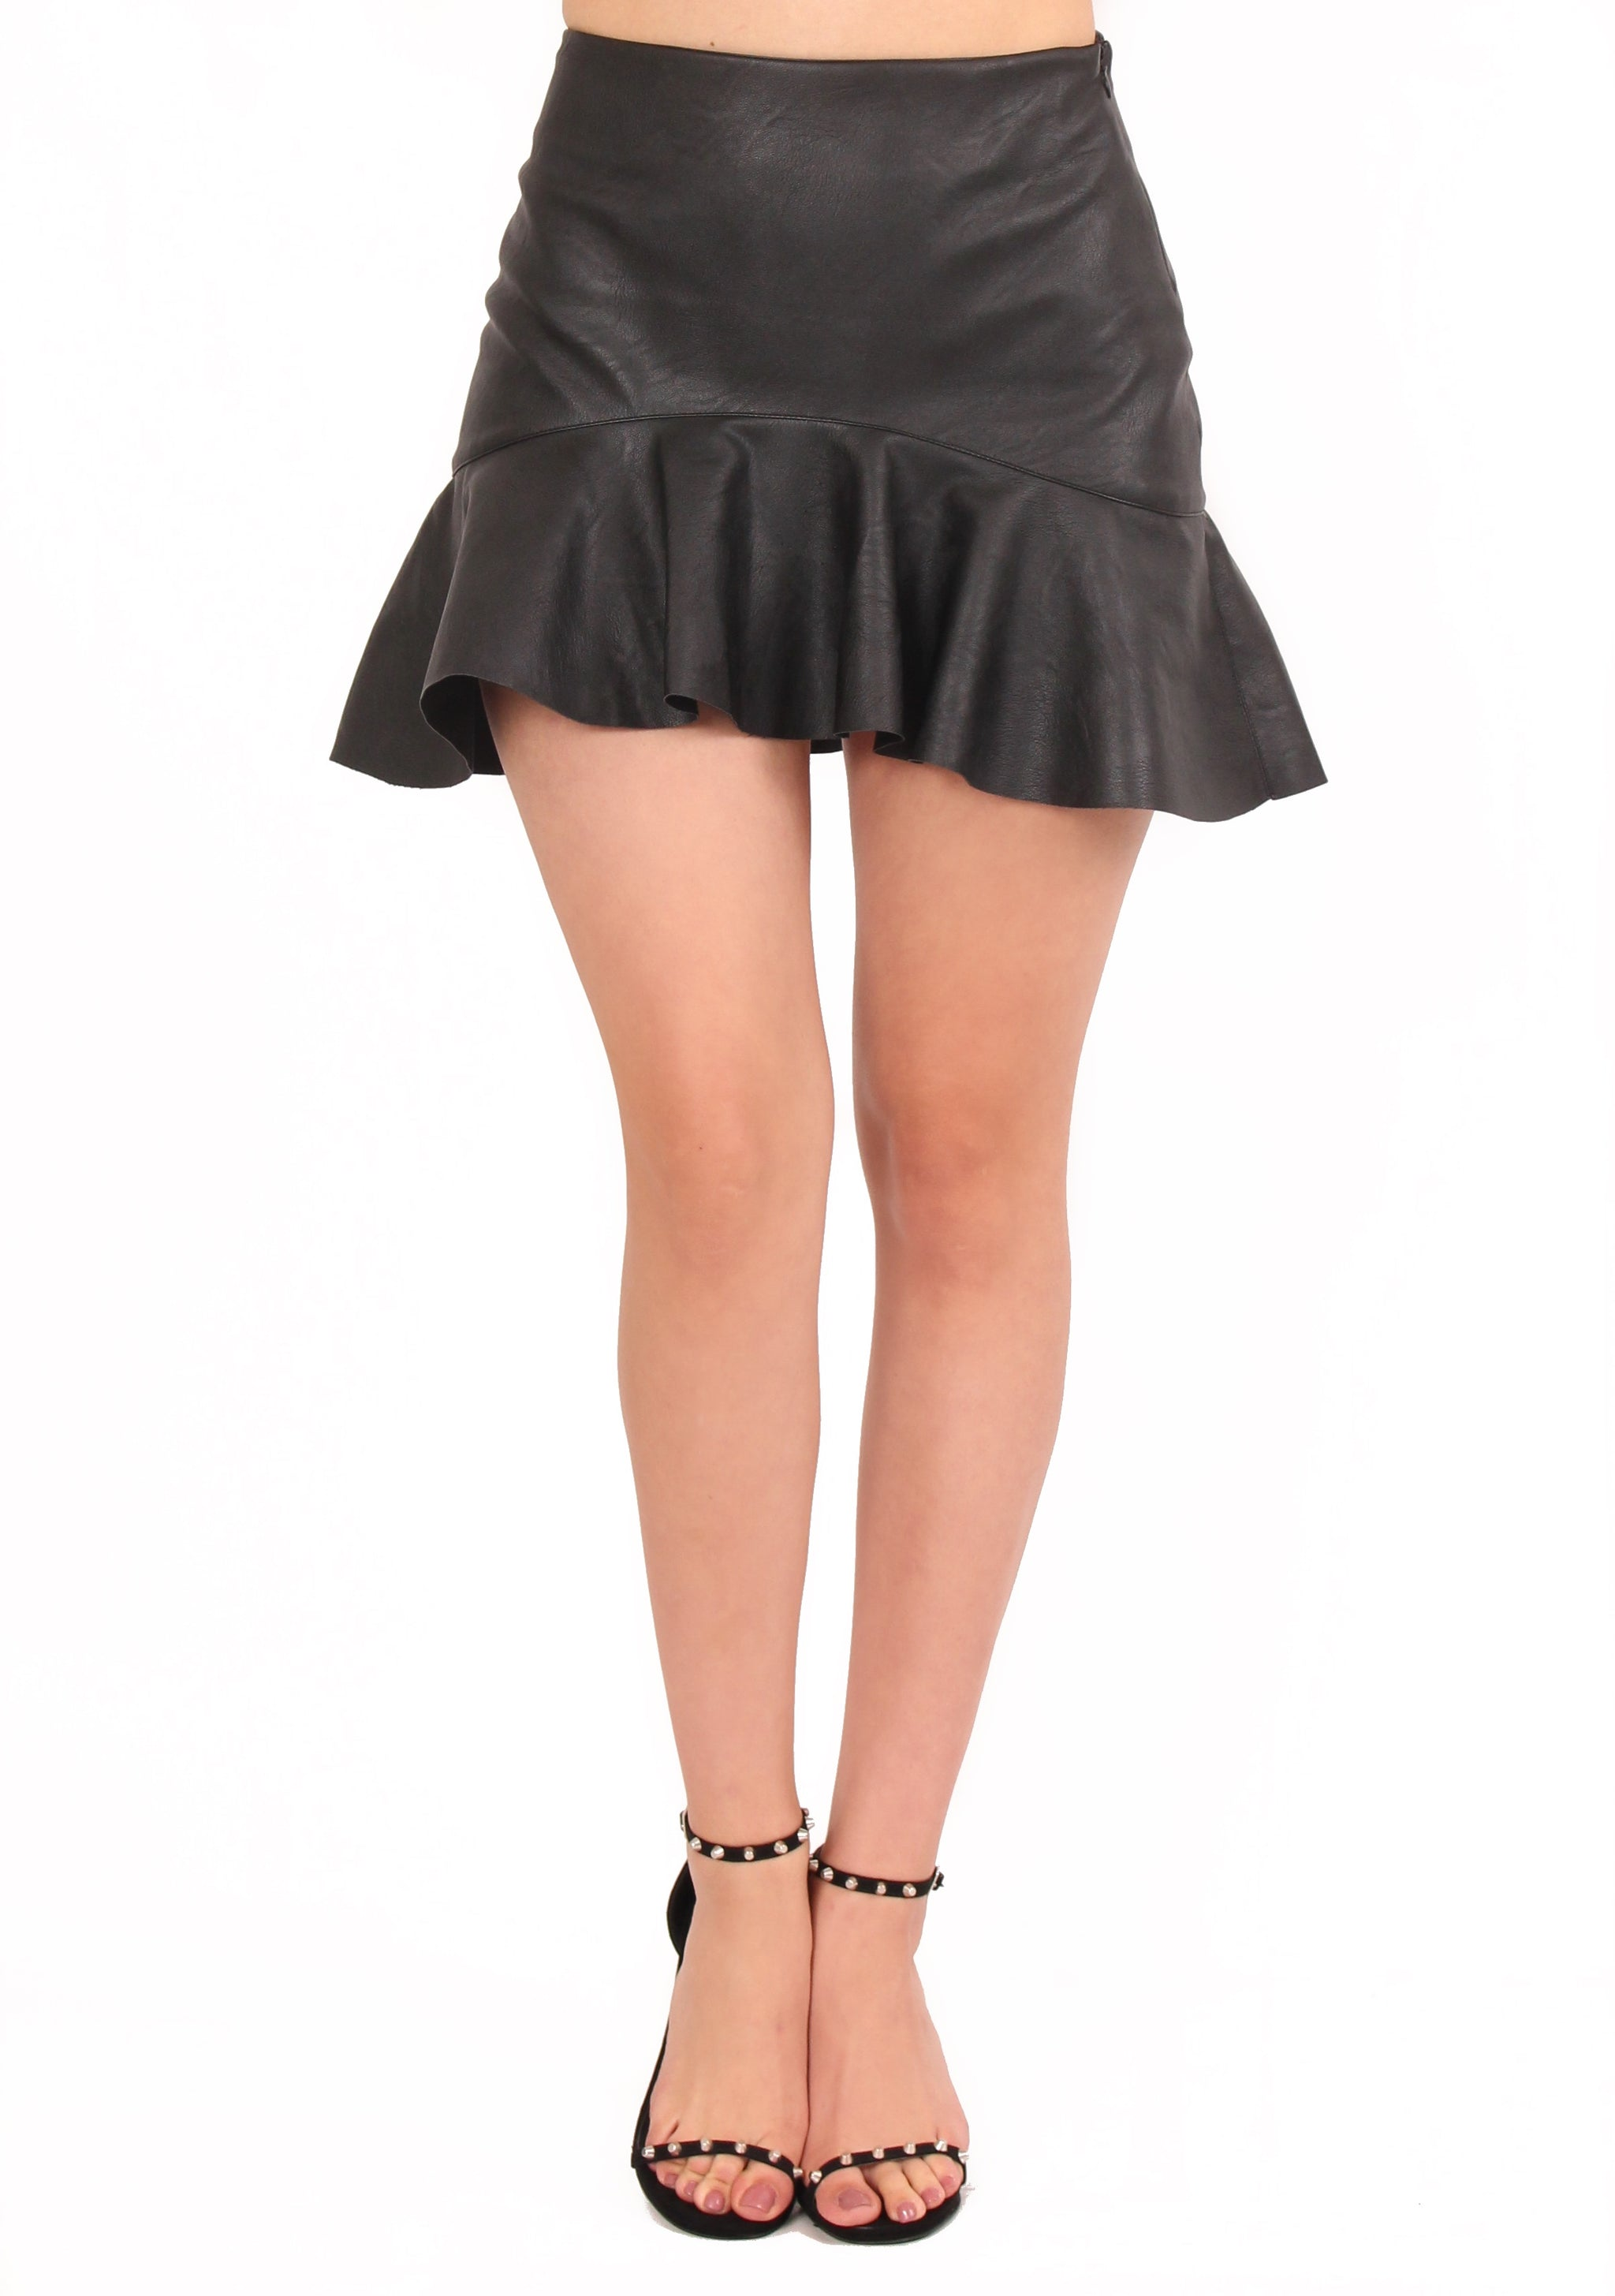 620d165d39f4 Celine Ruffle Skirt - Bellarte Clothing